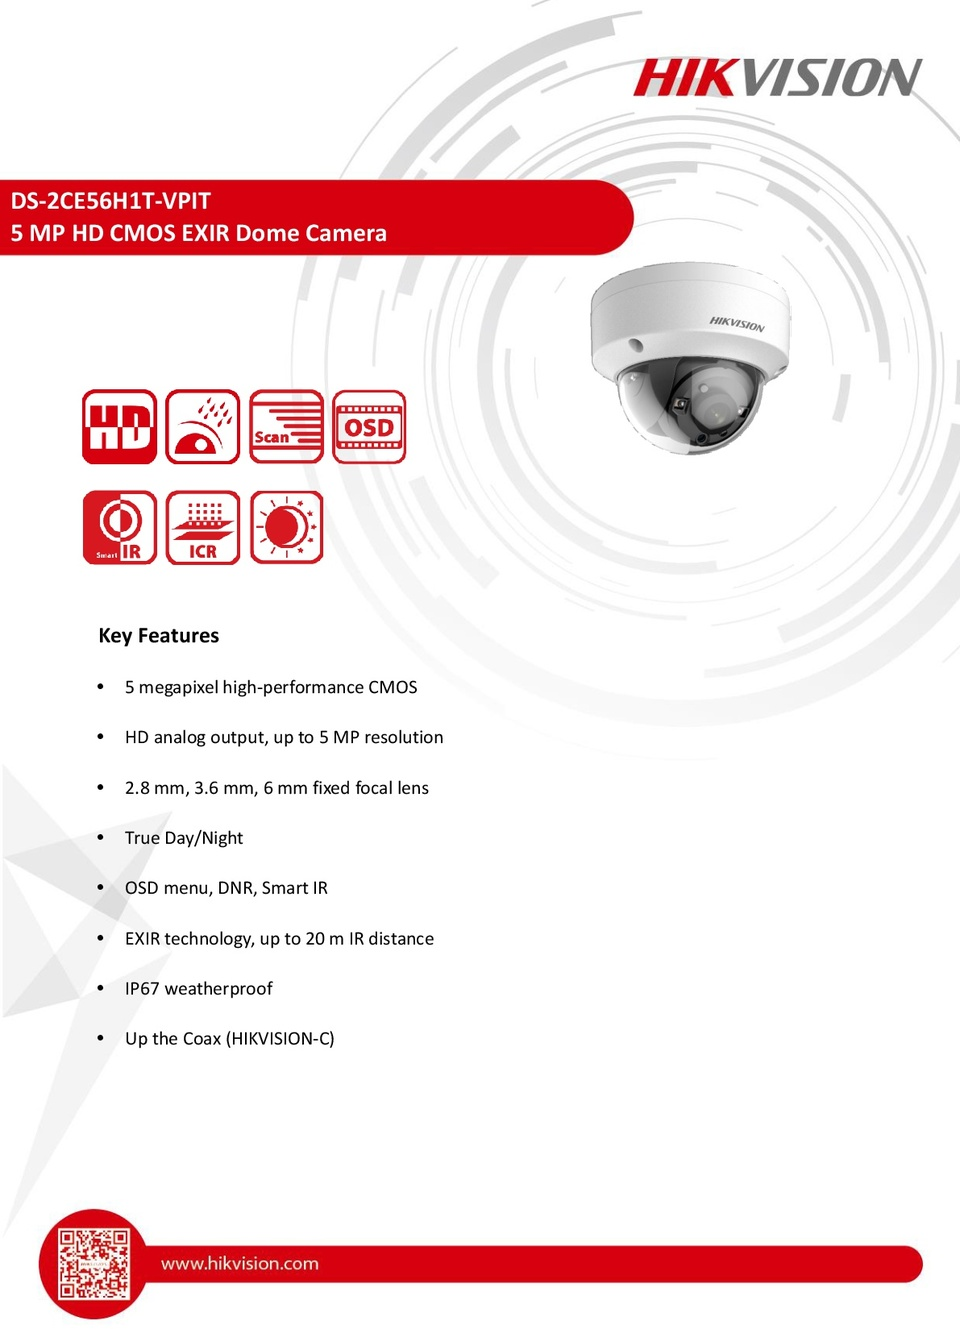 Hikvision DS-2CE56H1T-VPIT 5MP HD-TVI Dome Camera With 2.8mm Lens 0